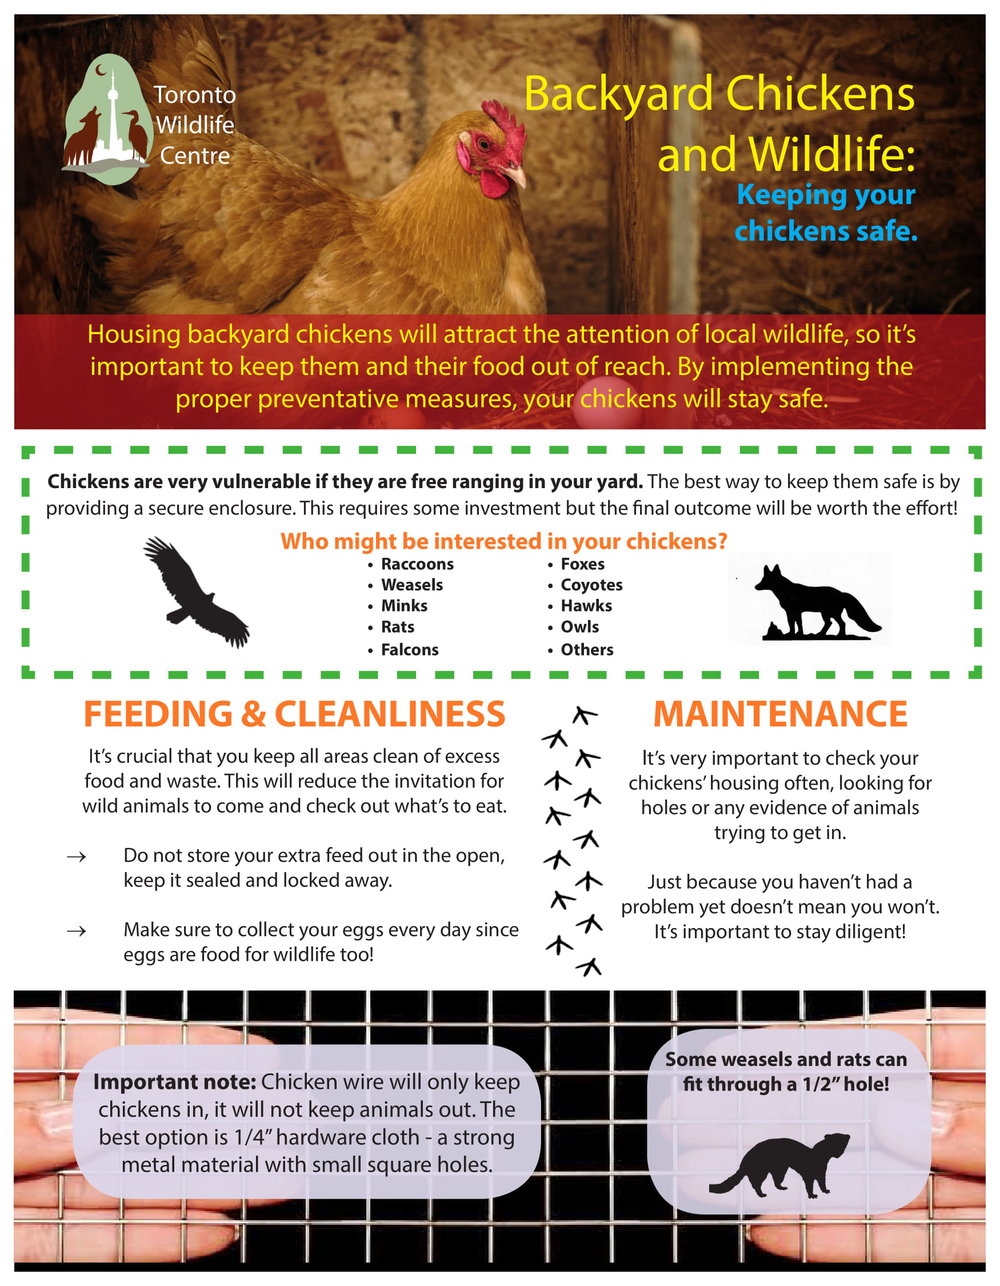 Backyard chickens and wildilfe-1.jpg